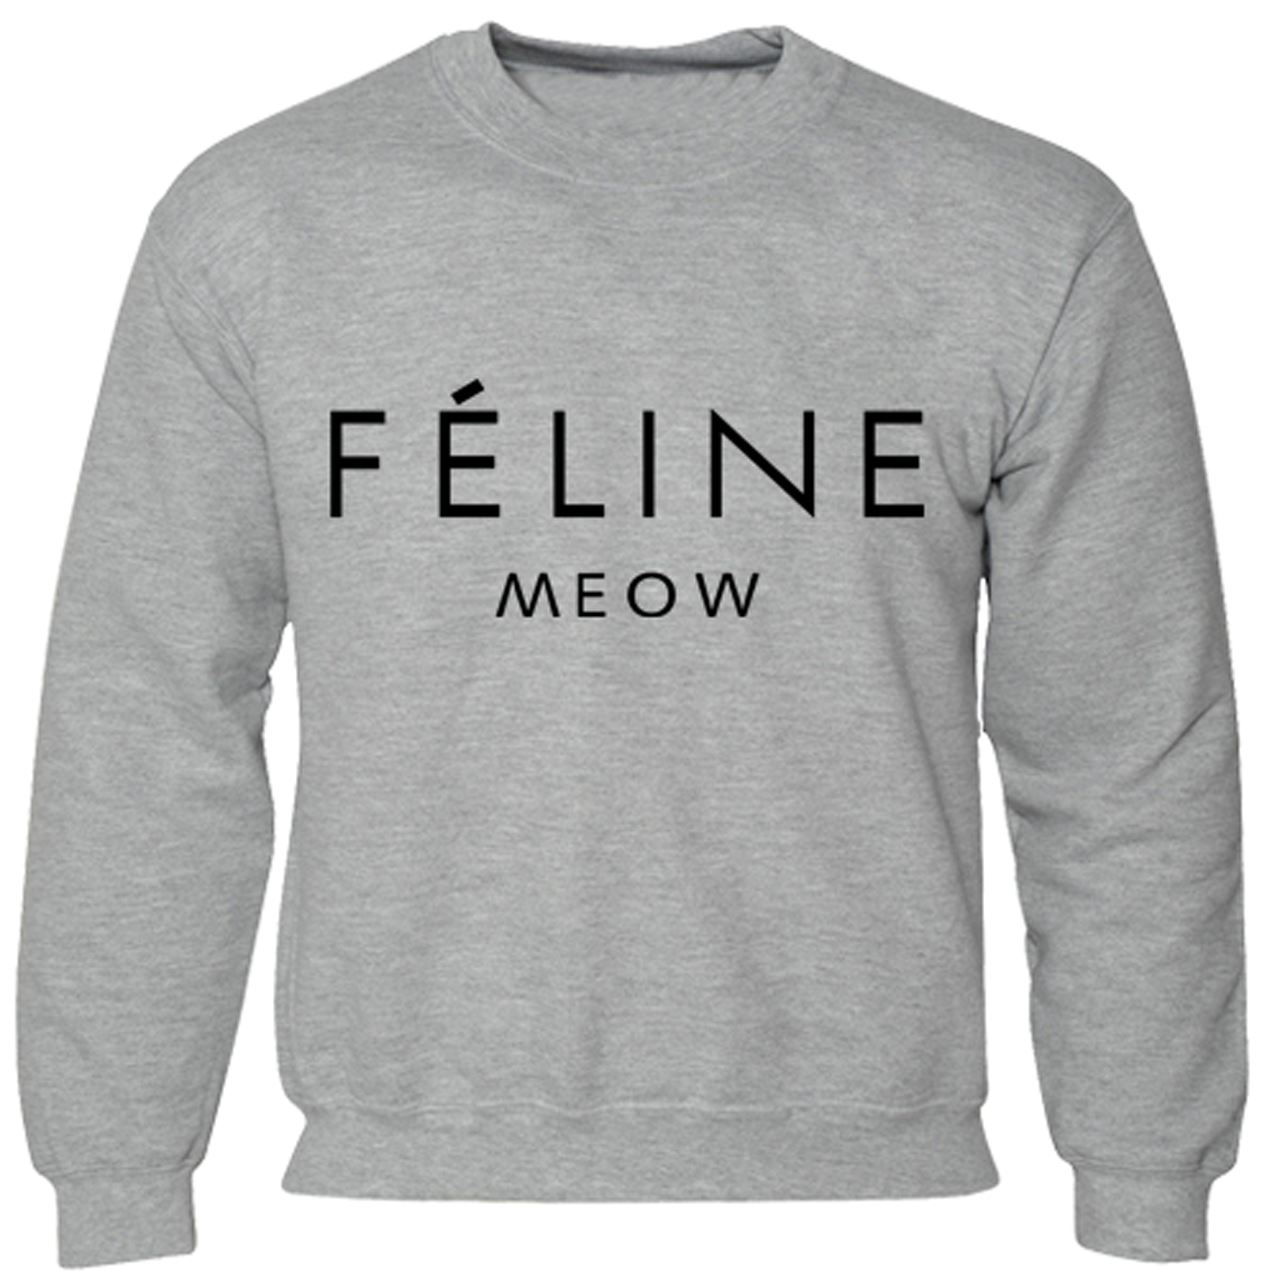 Mens-Boys-Unisex-Feline-Meow-Swag-Sweater-Hoodie-Sweat-Shirt-All-Sizes thumbnail 3